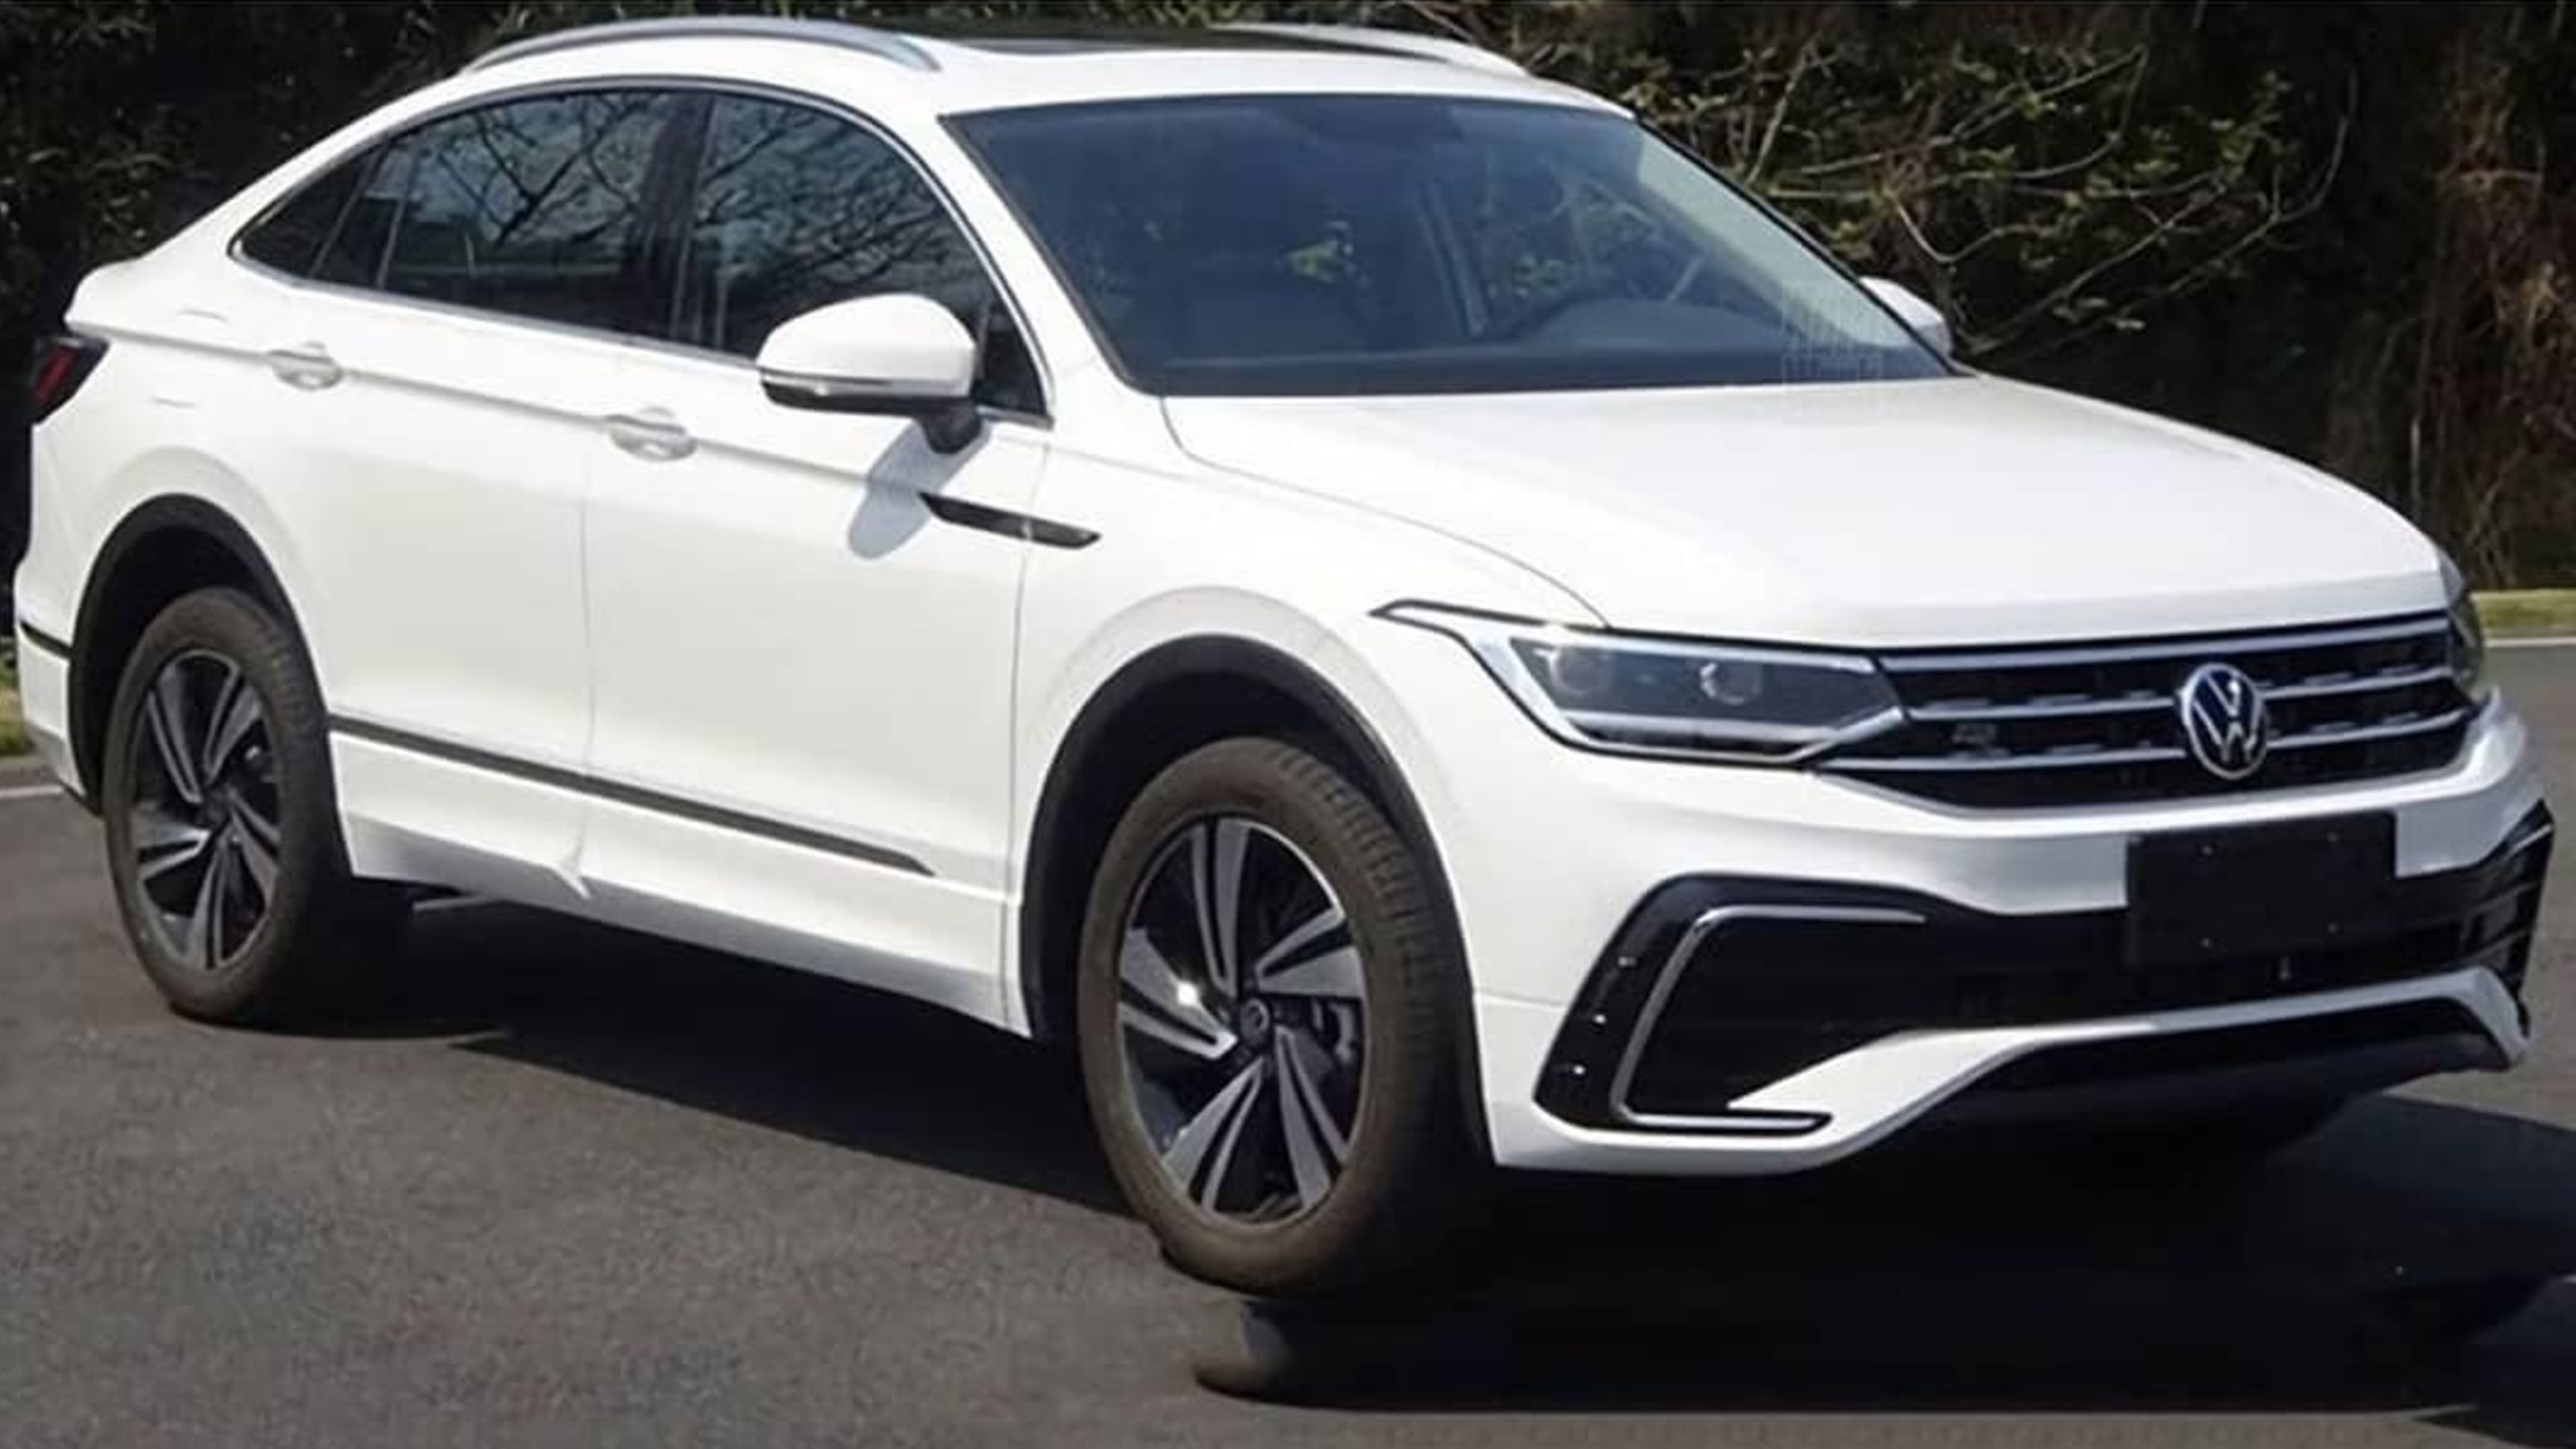 2021 Volkswagen Tiguan X Coupe Suv Revealed In Pre Release Images Caradvice